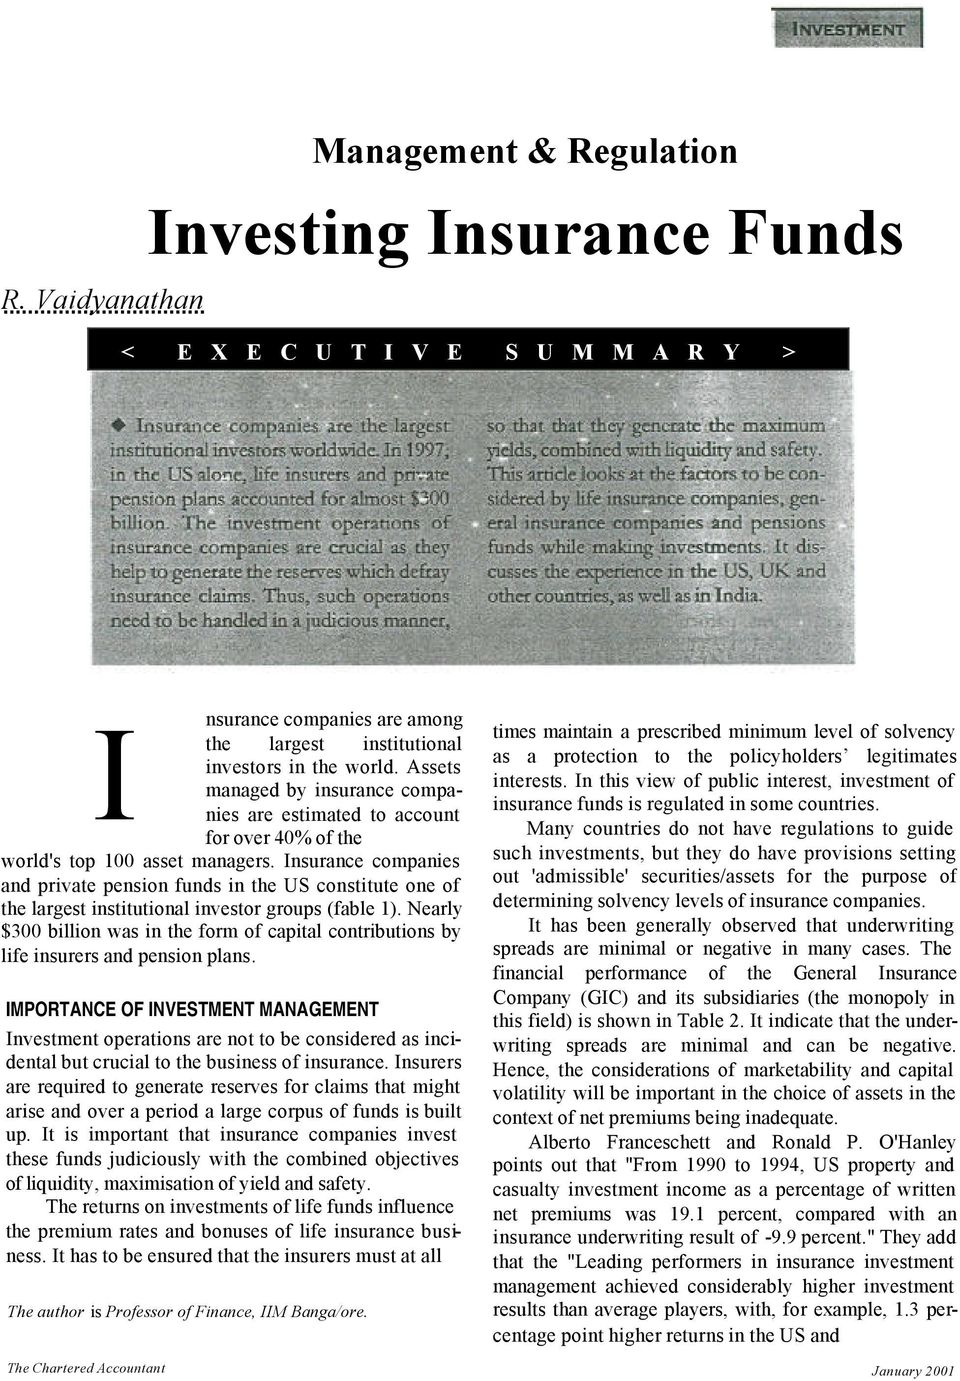 Insurance companies and private pension funds in the US constitute one of the largest institutional investor groups (fable 1).